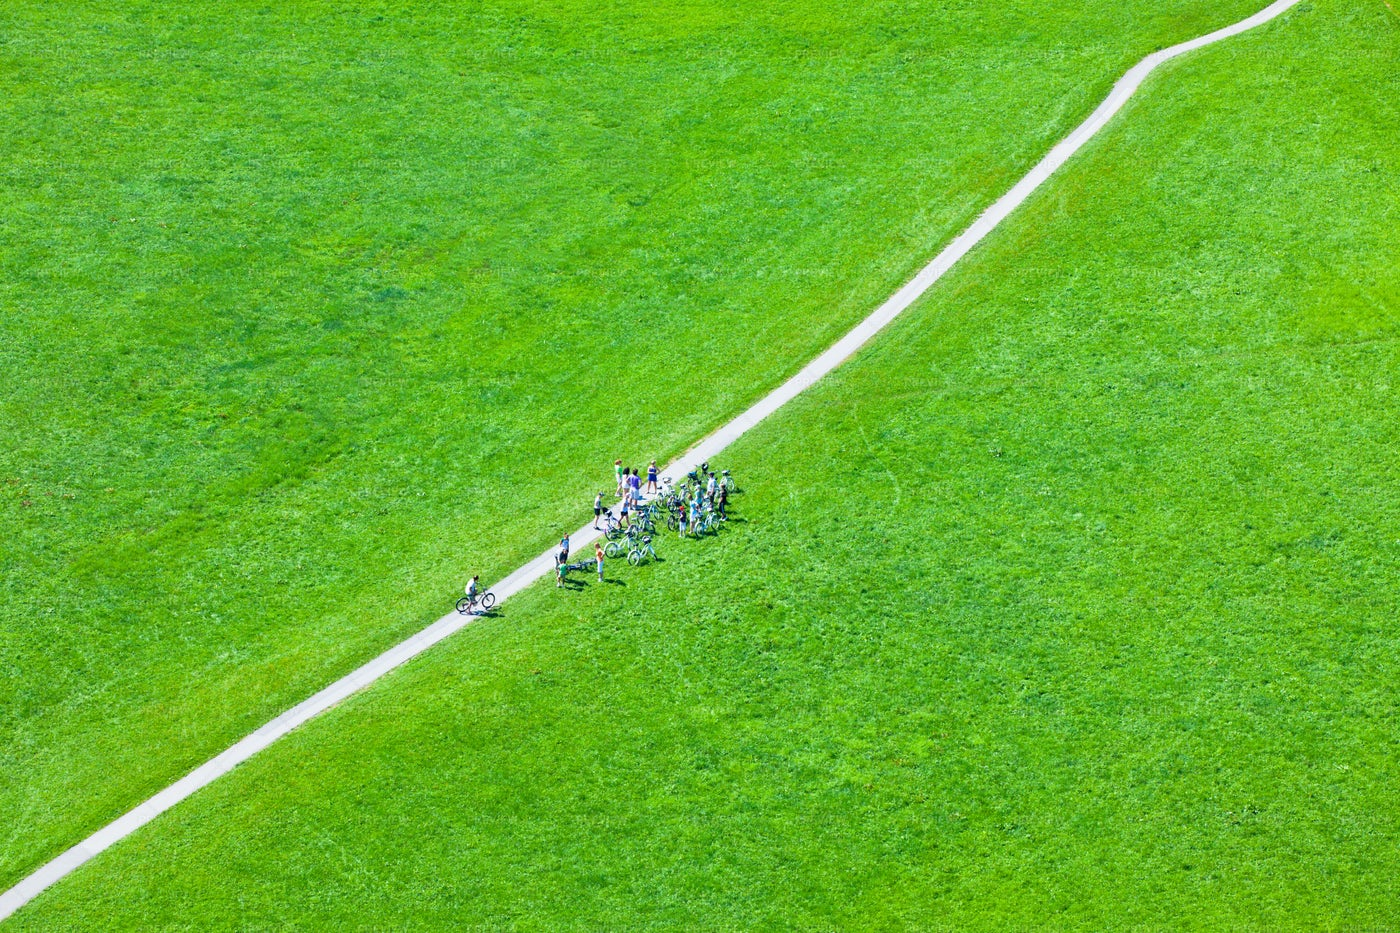 Footpath In Green Field: Stock Photos